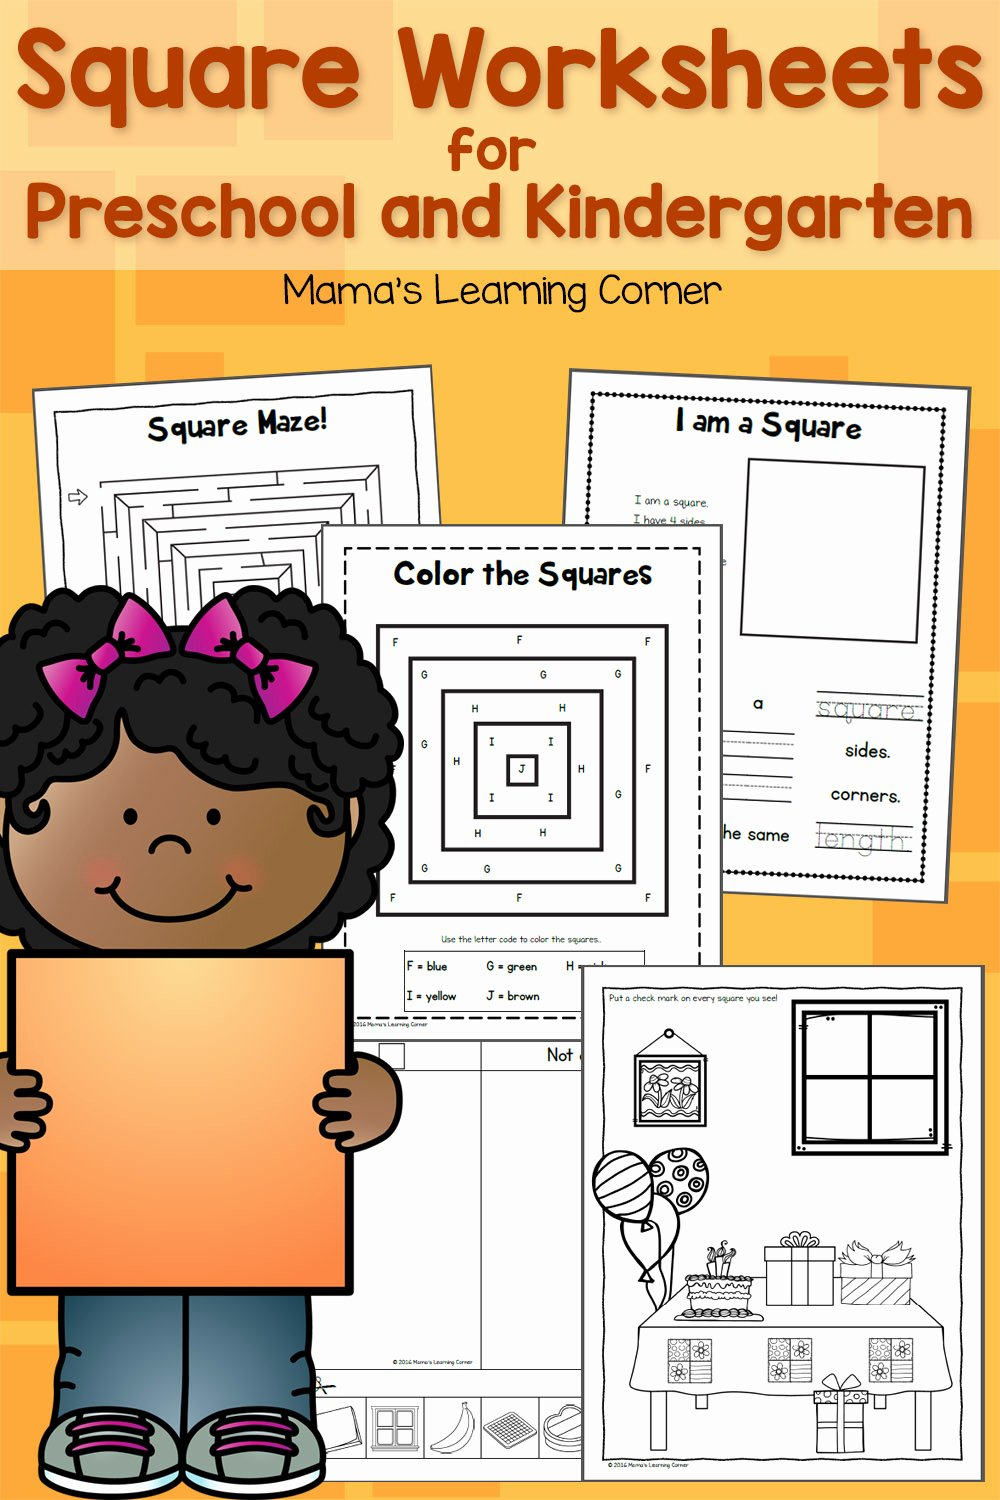 Square Worksheets for Preschoolers Lovely Square Worksheets for Preschool and Kindergarten Mamas